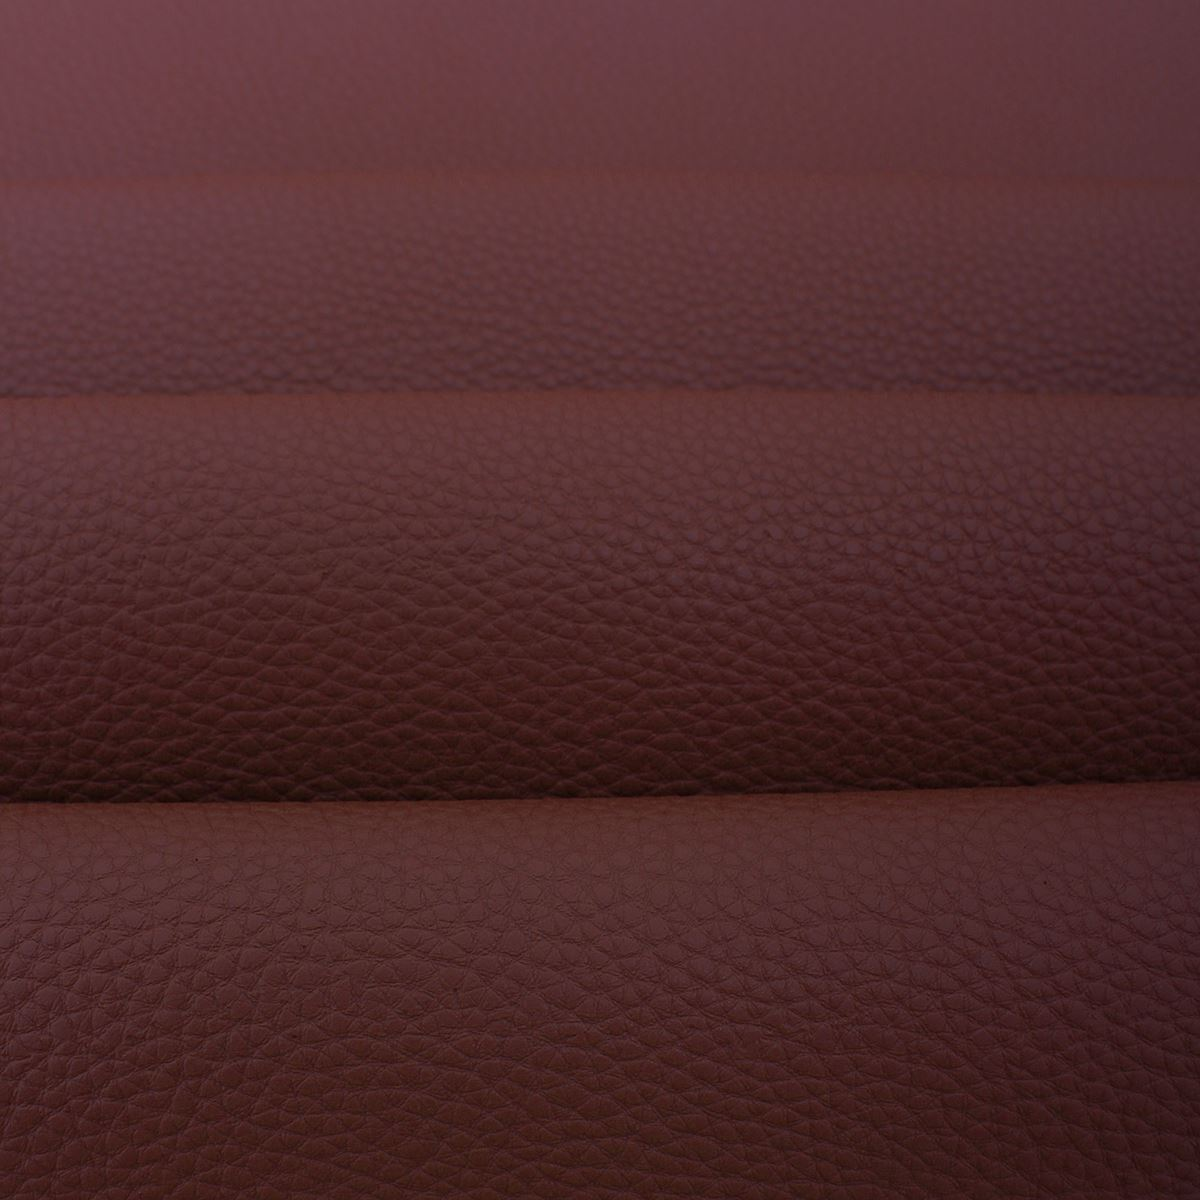 Nova-Faux-Leatherette-Artificial-Leather-Heavy-Grain-Upholstery-Vehicle-Fabric thumbnail 47